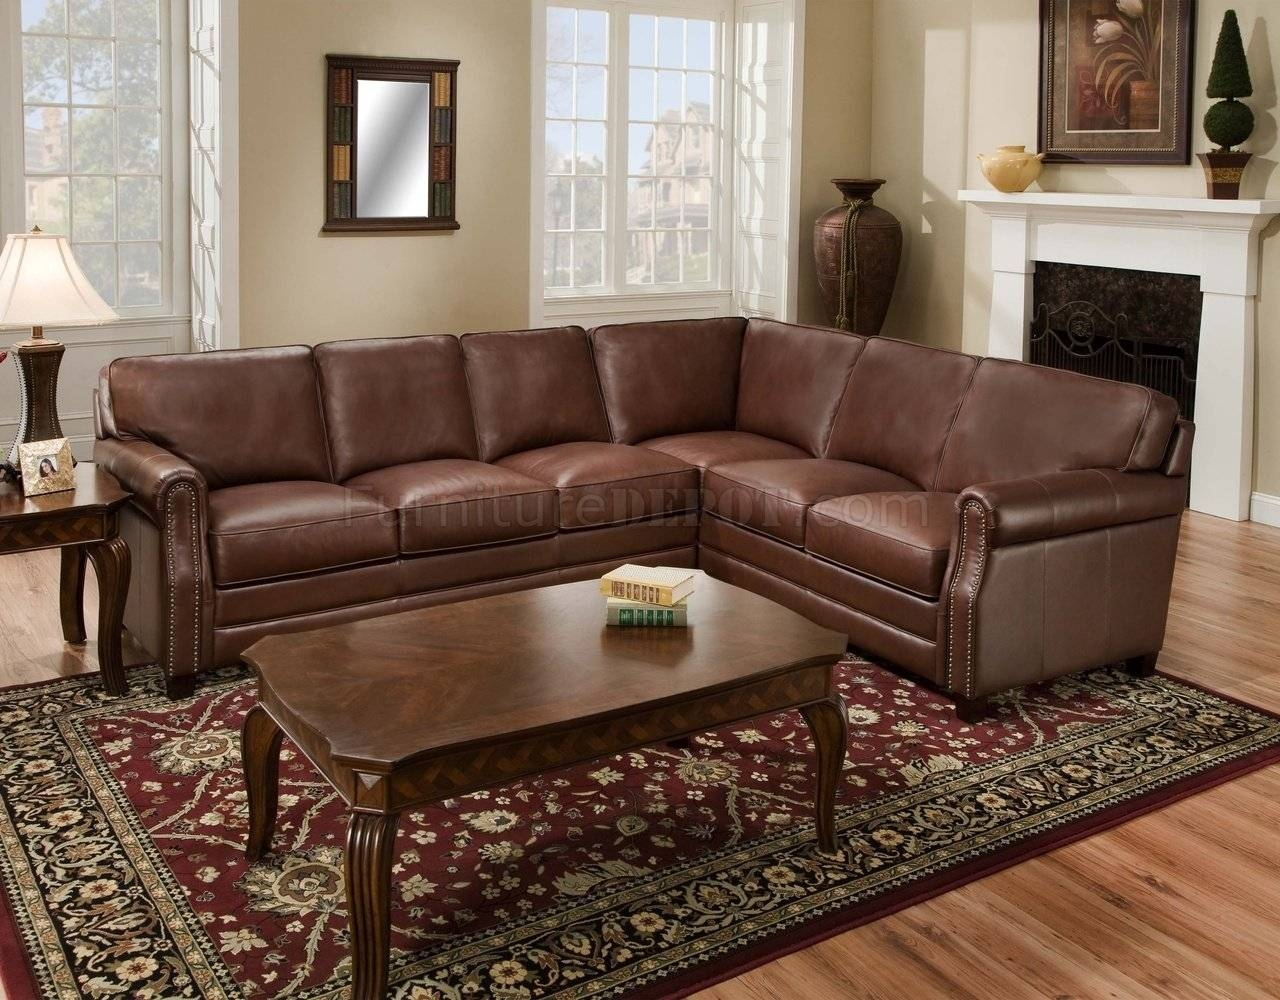 15 Photo Of Traditional Sectional Sofas within Traditional Sectional Sofas (Image 1 of 25)